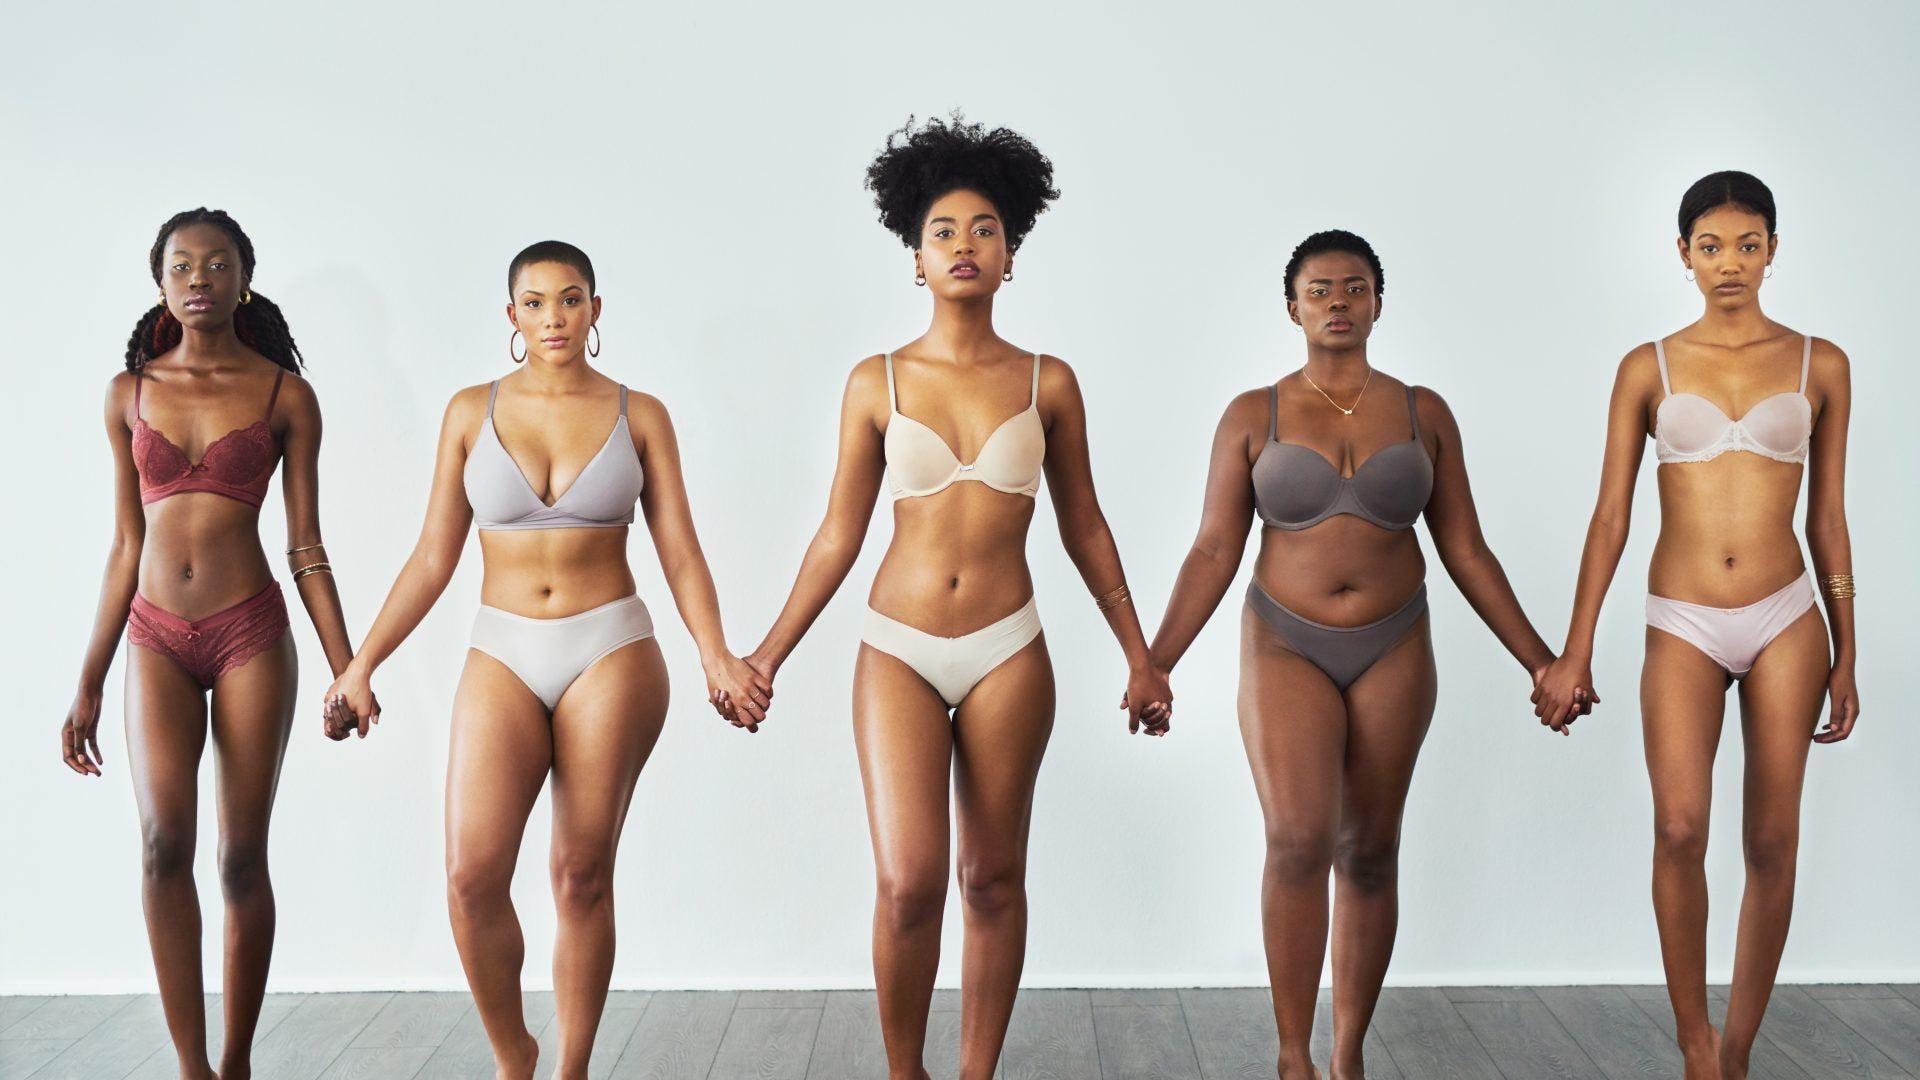 Why Is Body Positivity So Negative?